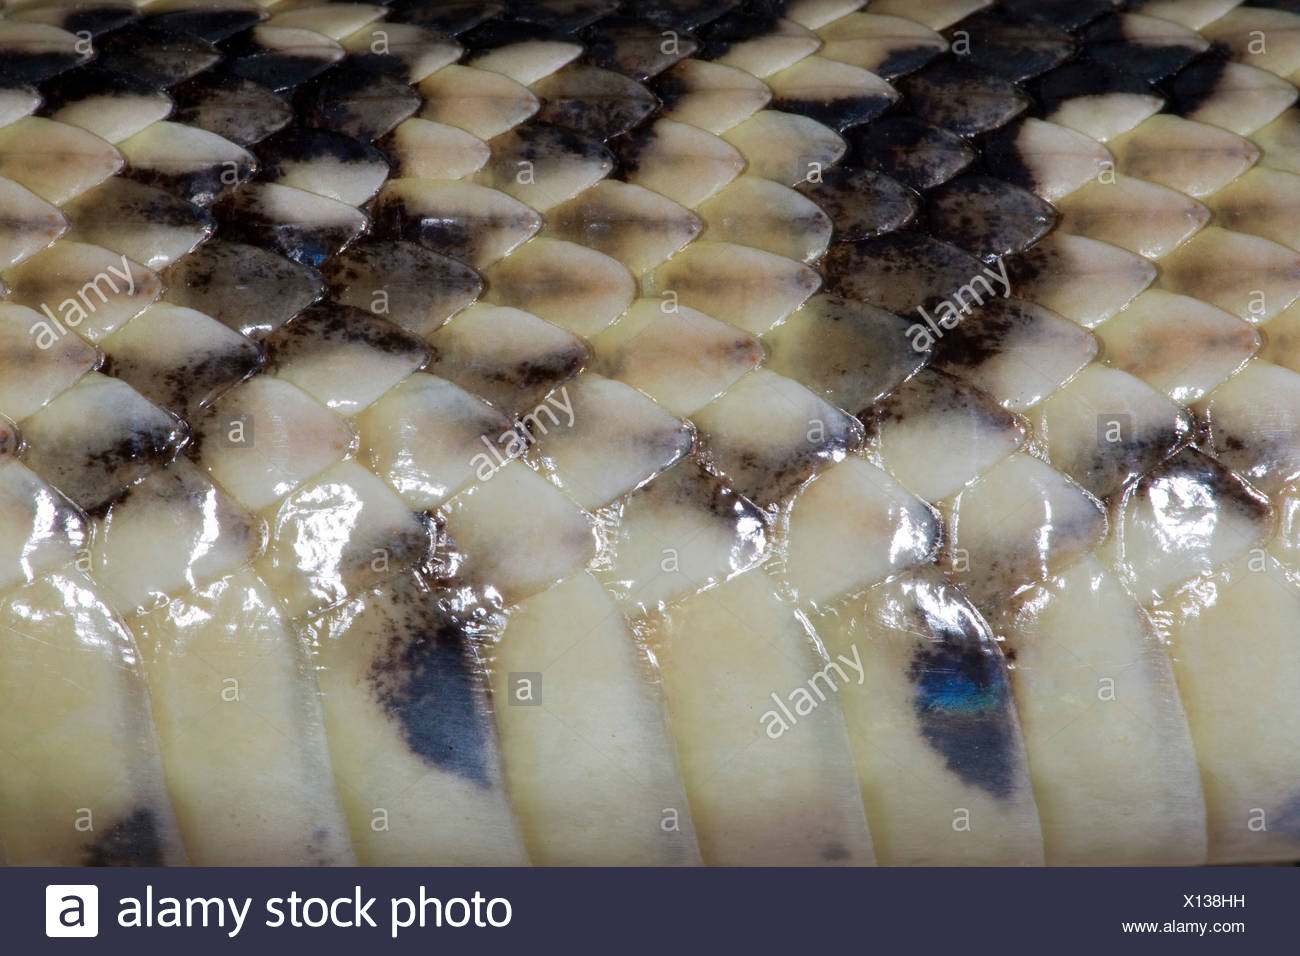 Road-killed bull snake (Pituophis catenifer sayi), detail of scales, lateral view, Pueblo West, Colorado. Stock Photo